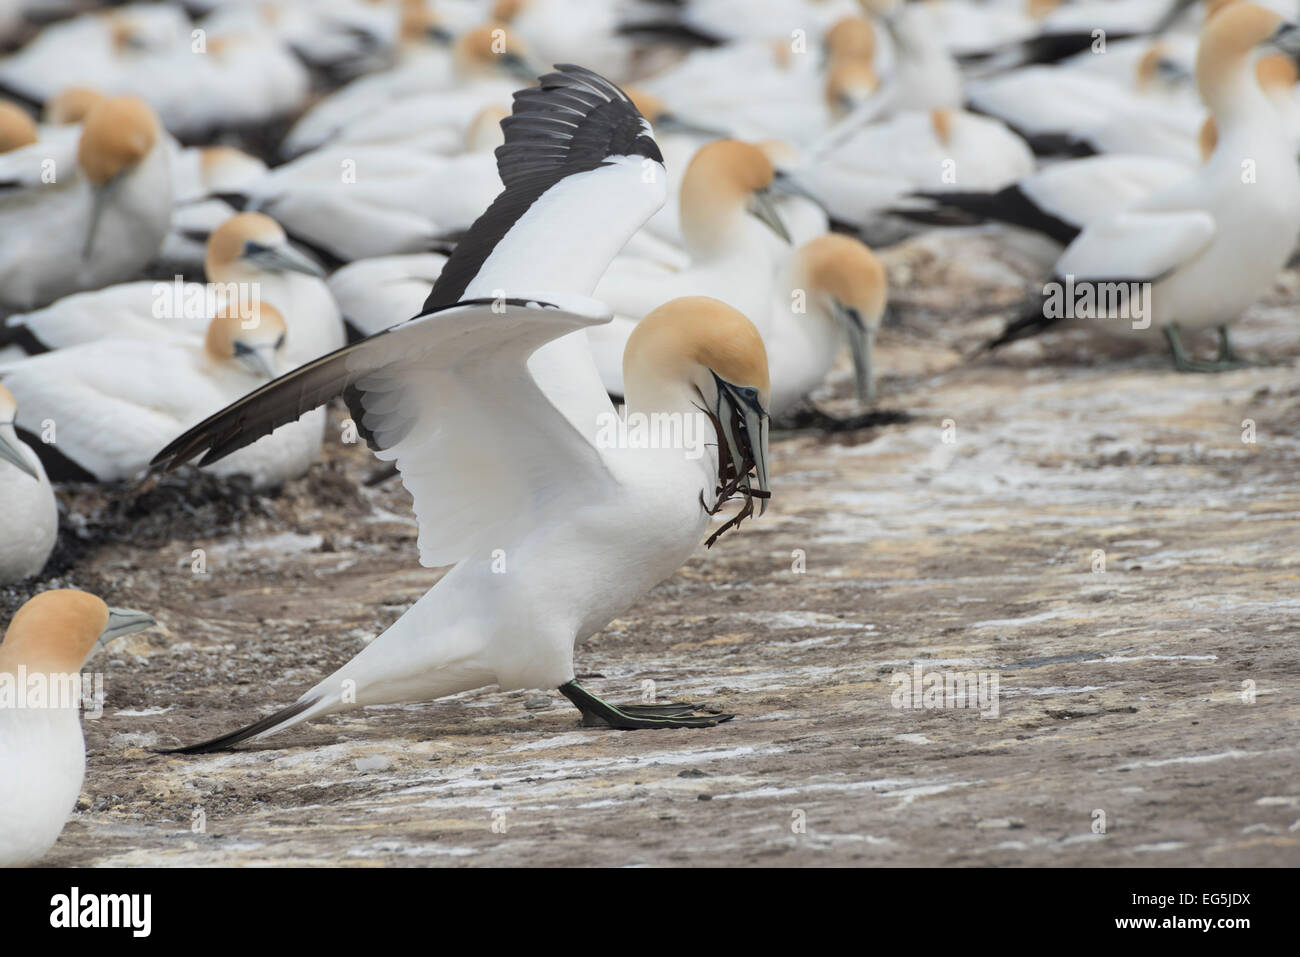 Kolonie von Austral Tölpel, colony of Australian Gannet, Lighthouse Colony, Cape Kidnappers, Neuseeland newzealand - Stock Image